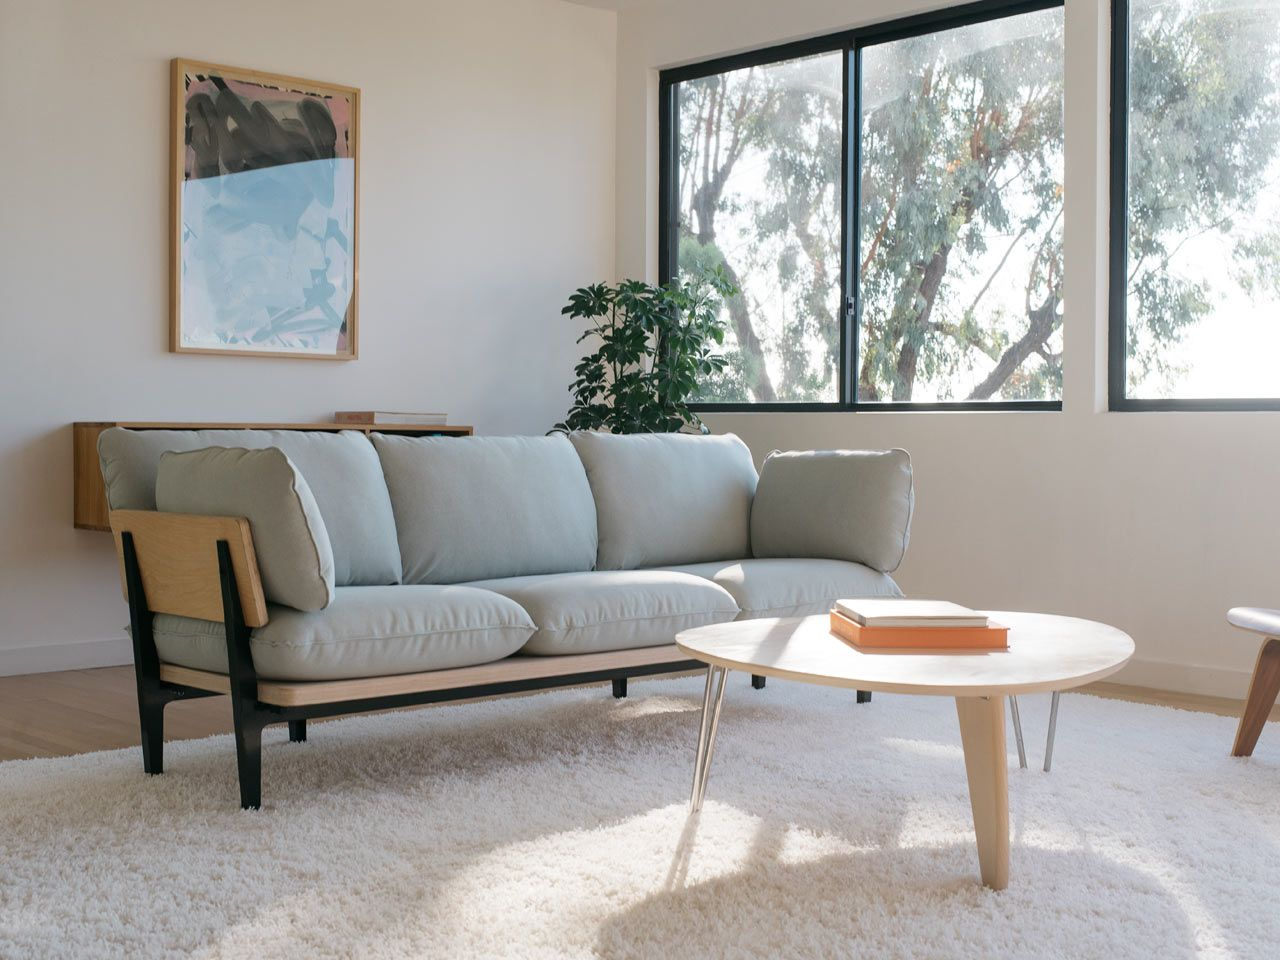 Top Places to Sell Used Furniture Online Safely